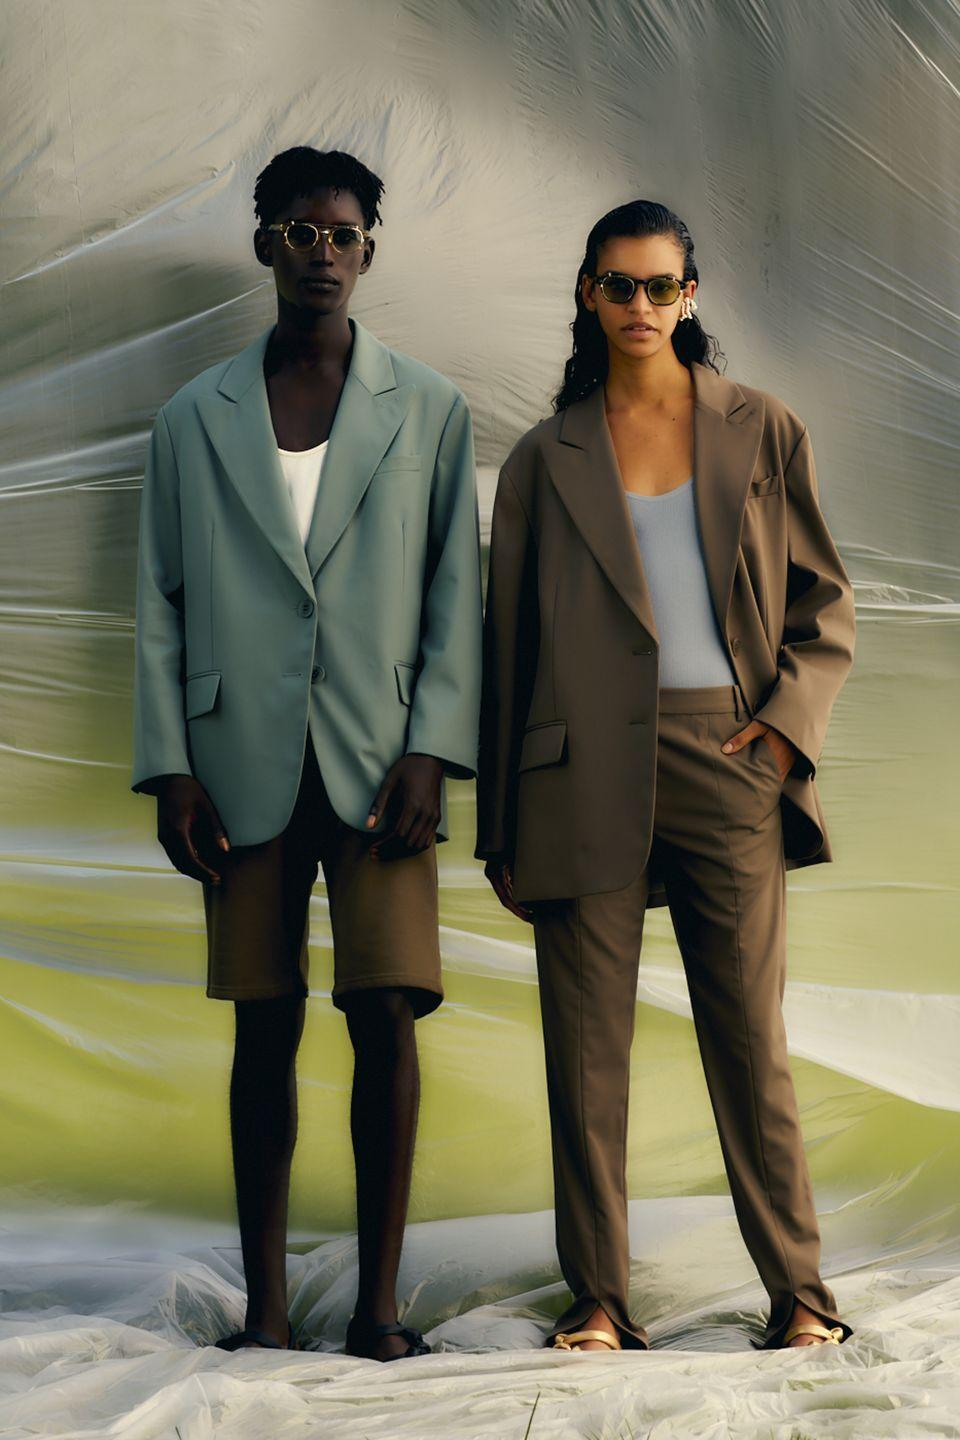 "<p>Sleek and subtle with just a hint of drama, Tibi's spring/summer 2021 collection was all about relaxed dressing up with <a href=""https://www.vogue.com/fashion-shows/spring-2021-ready-to-wear/tibi"" rel=""nofollow noopener"" target=""_blank"" data-ylk=""slk:the designer explaining"" class=""link rapid-noclick-resp"">the designer explaining</a> that she wanted to be able to wear every piece in her living room ""without feeling ridiculous"". Loose-fitting suits and comfortable yet chic dresses and separates certainly fitted this criteria, giving women everywhere an opportunity to update their working-from-home wardrobes next spring.</p>"